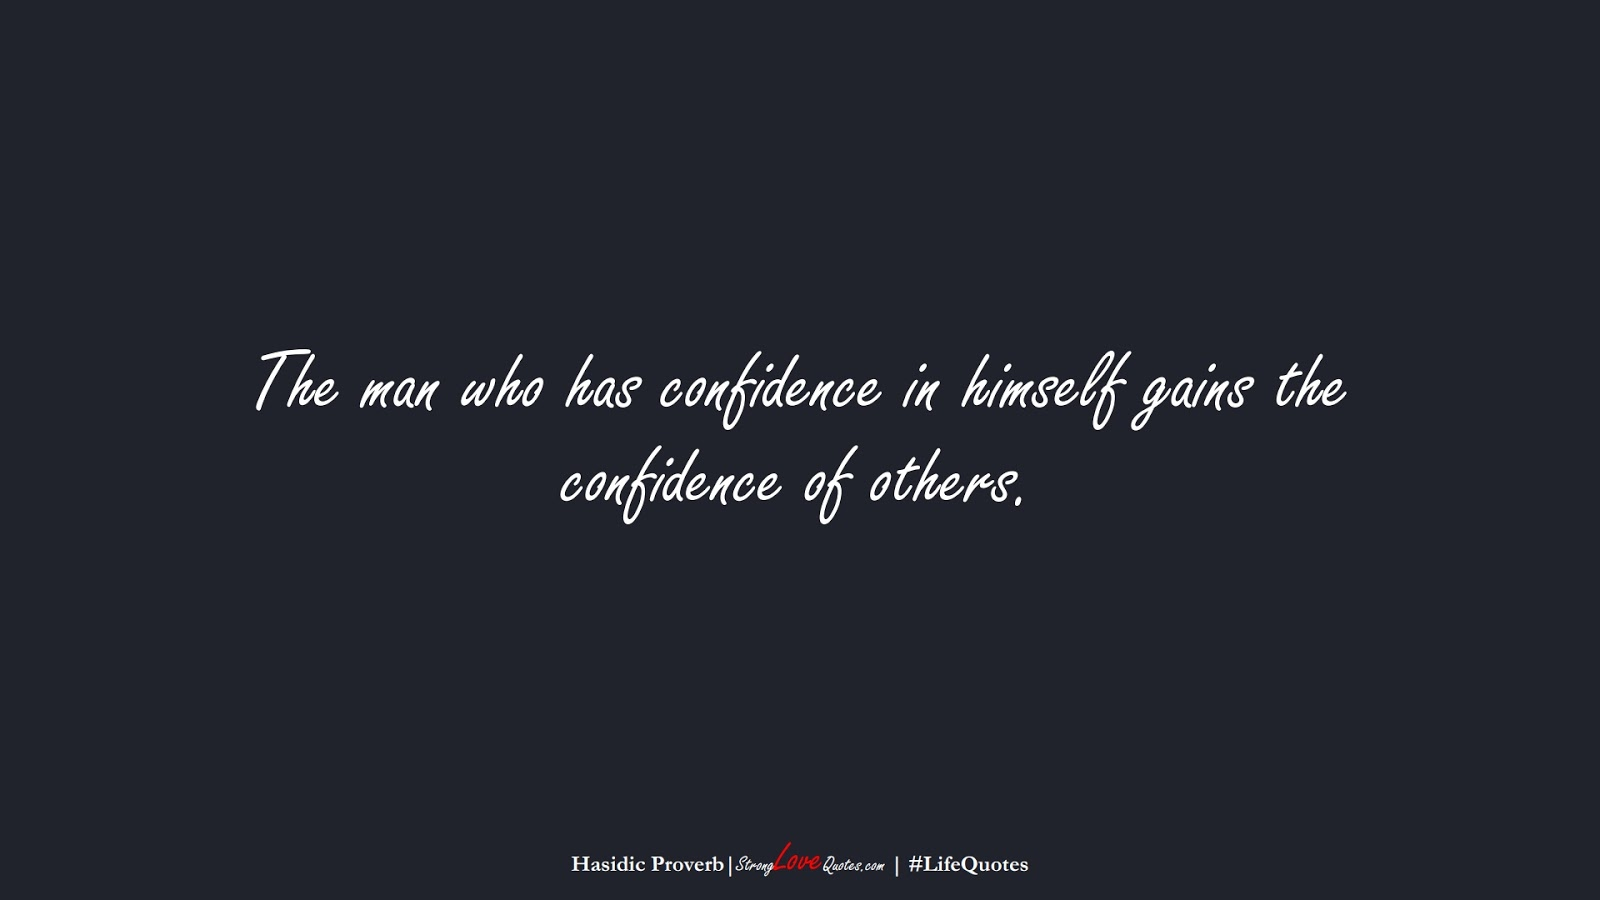 The man who has confidence in himself gains the confidence of others. (Hasidic Proverb);  #LifeQuotes